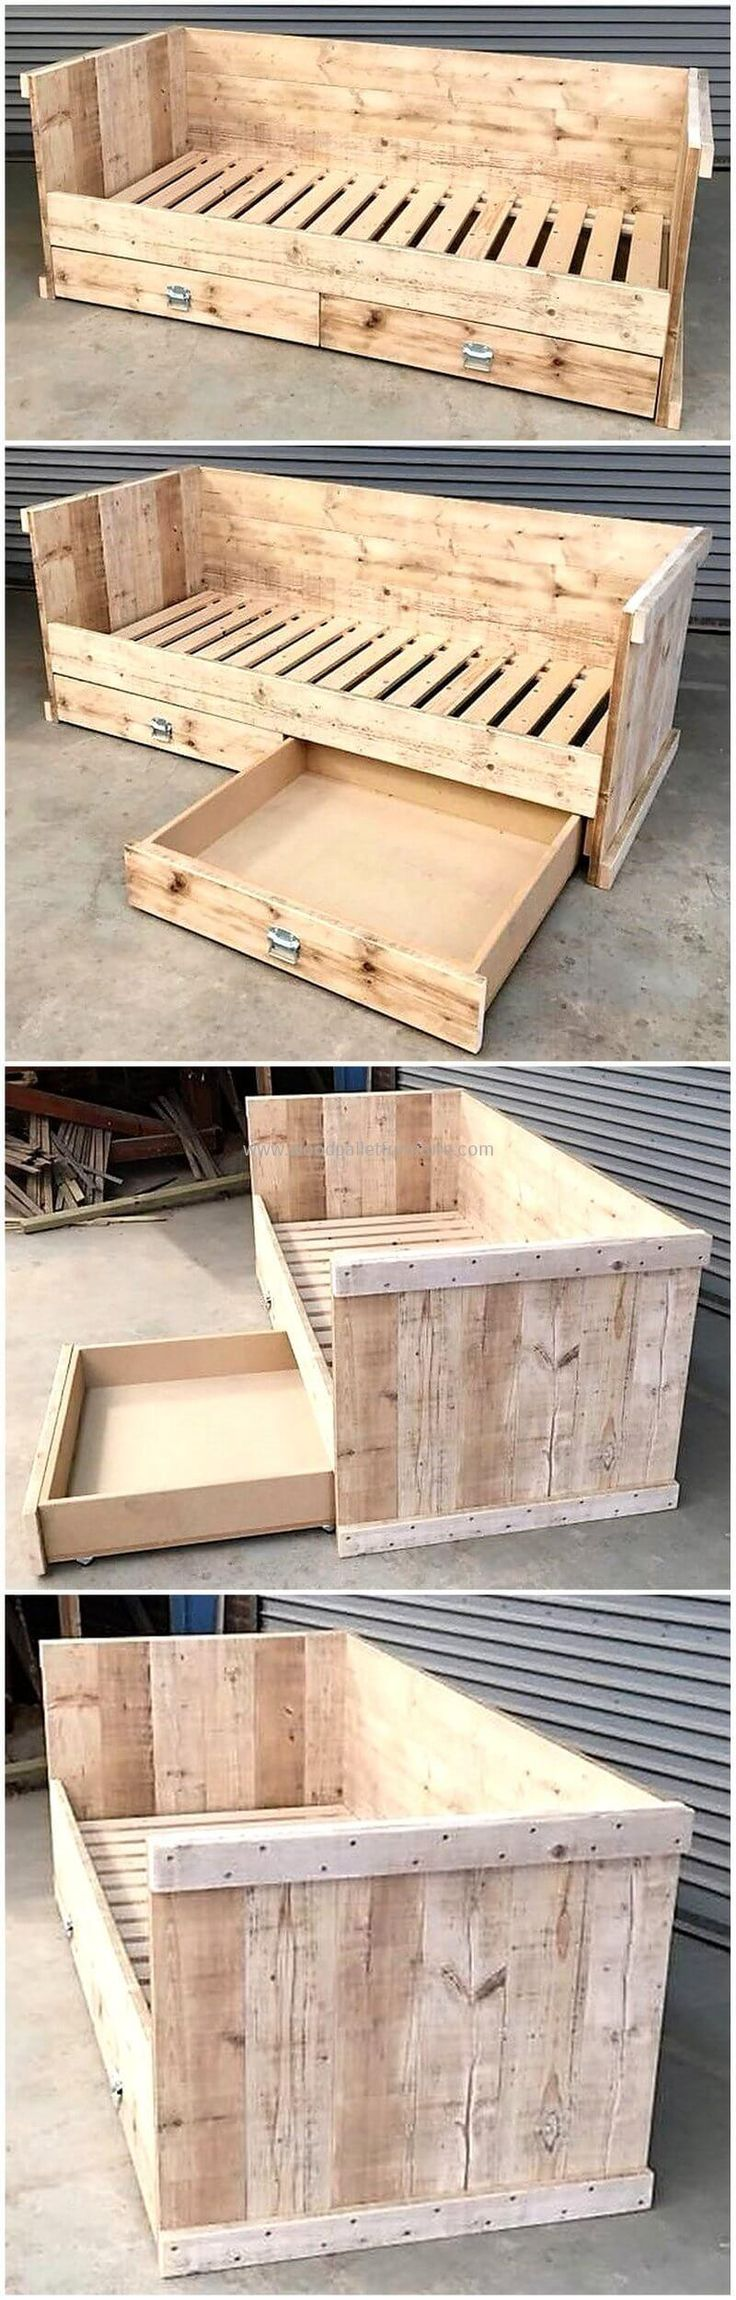 Let's check out the finest designing of wooden pallet creation. The wood pallet can not only be used for small furniture items but also best material for home's furnishing. This wood pallet bed with storage drawers appears sturdy and durable to relax on it and the storage drawers will for sure provide you a great storage space in your place.